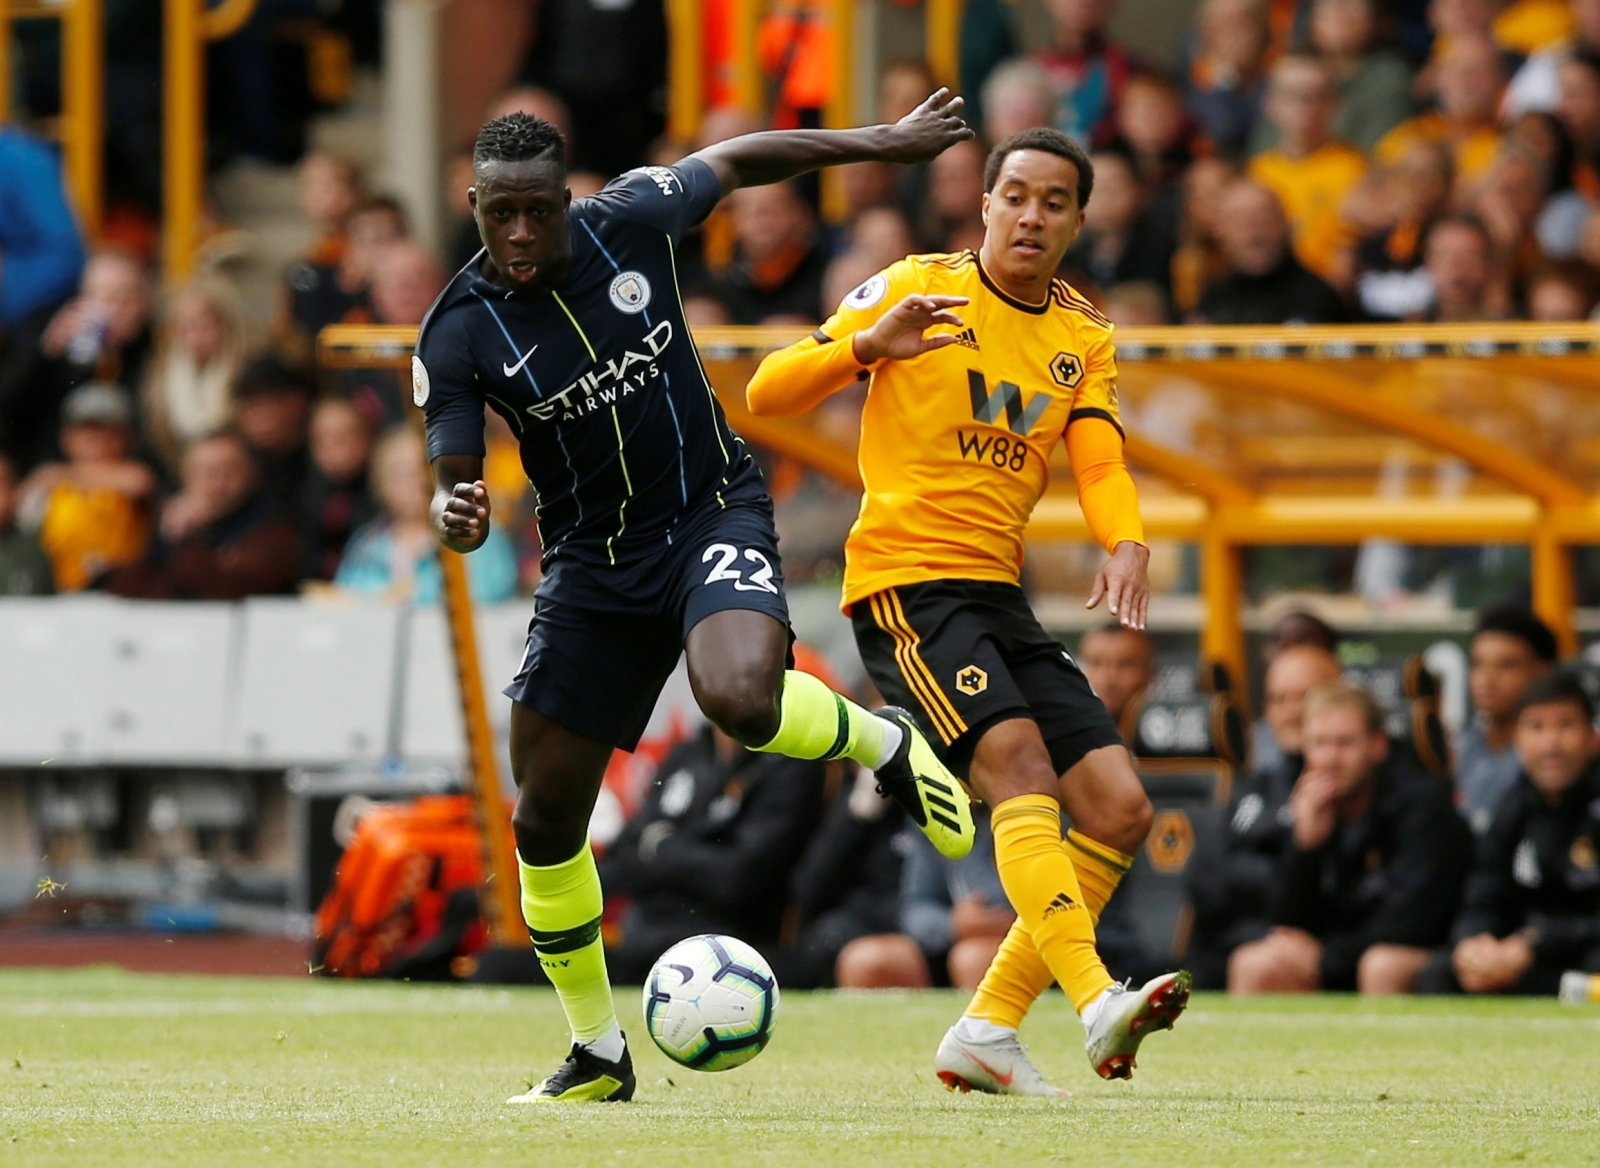 Leeds fans are loving Man City sensation Benjamin Mendy